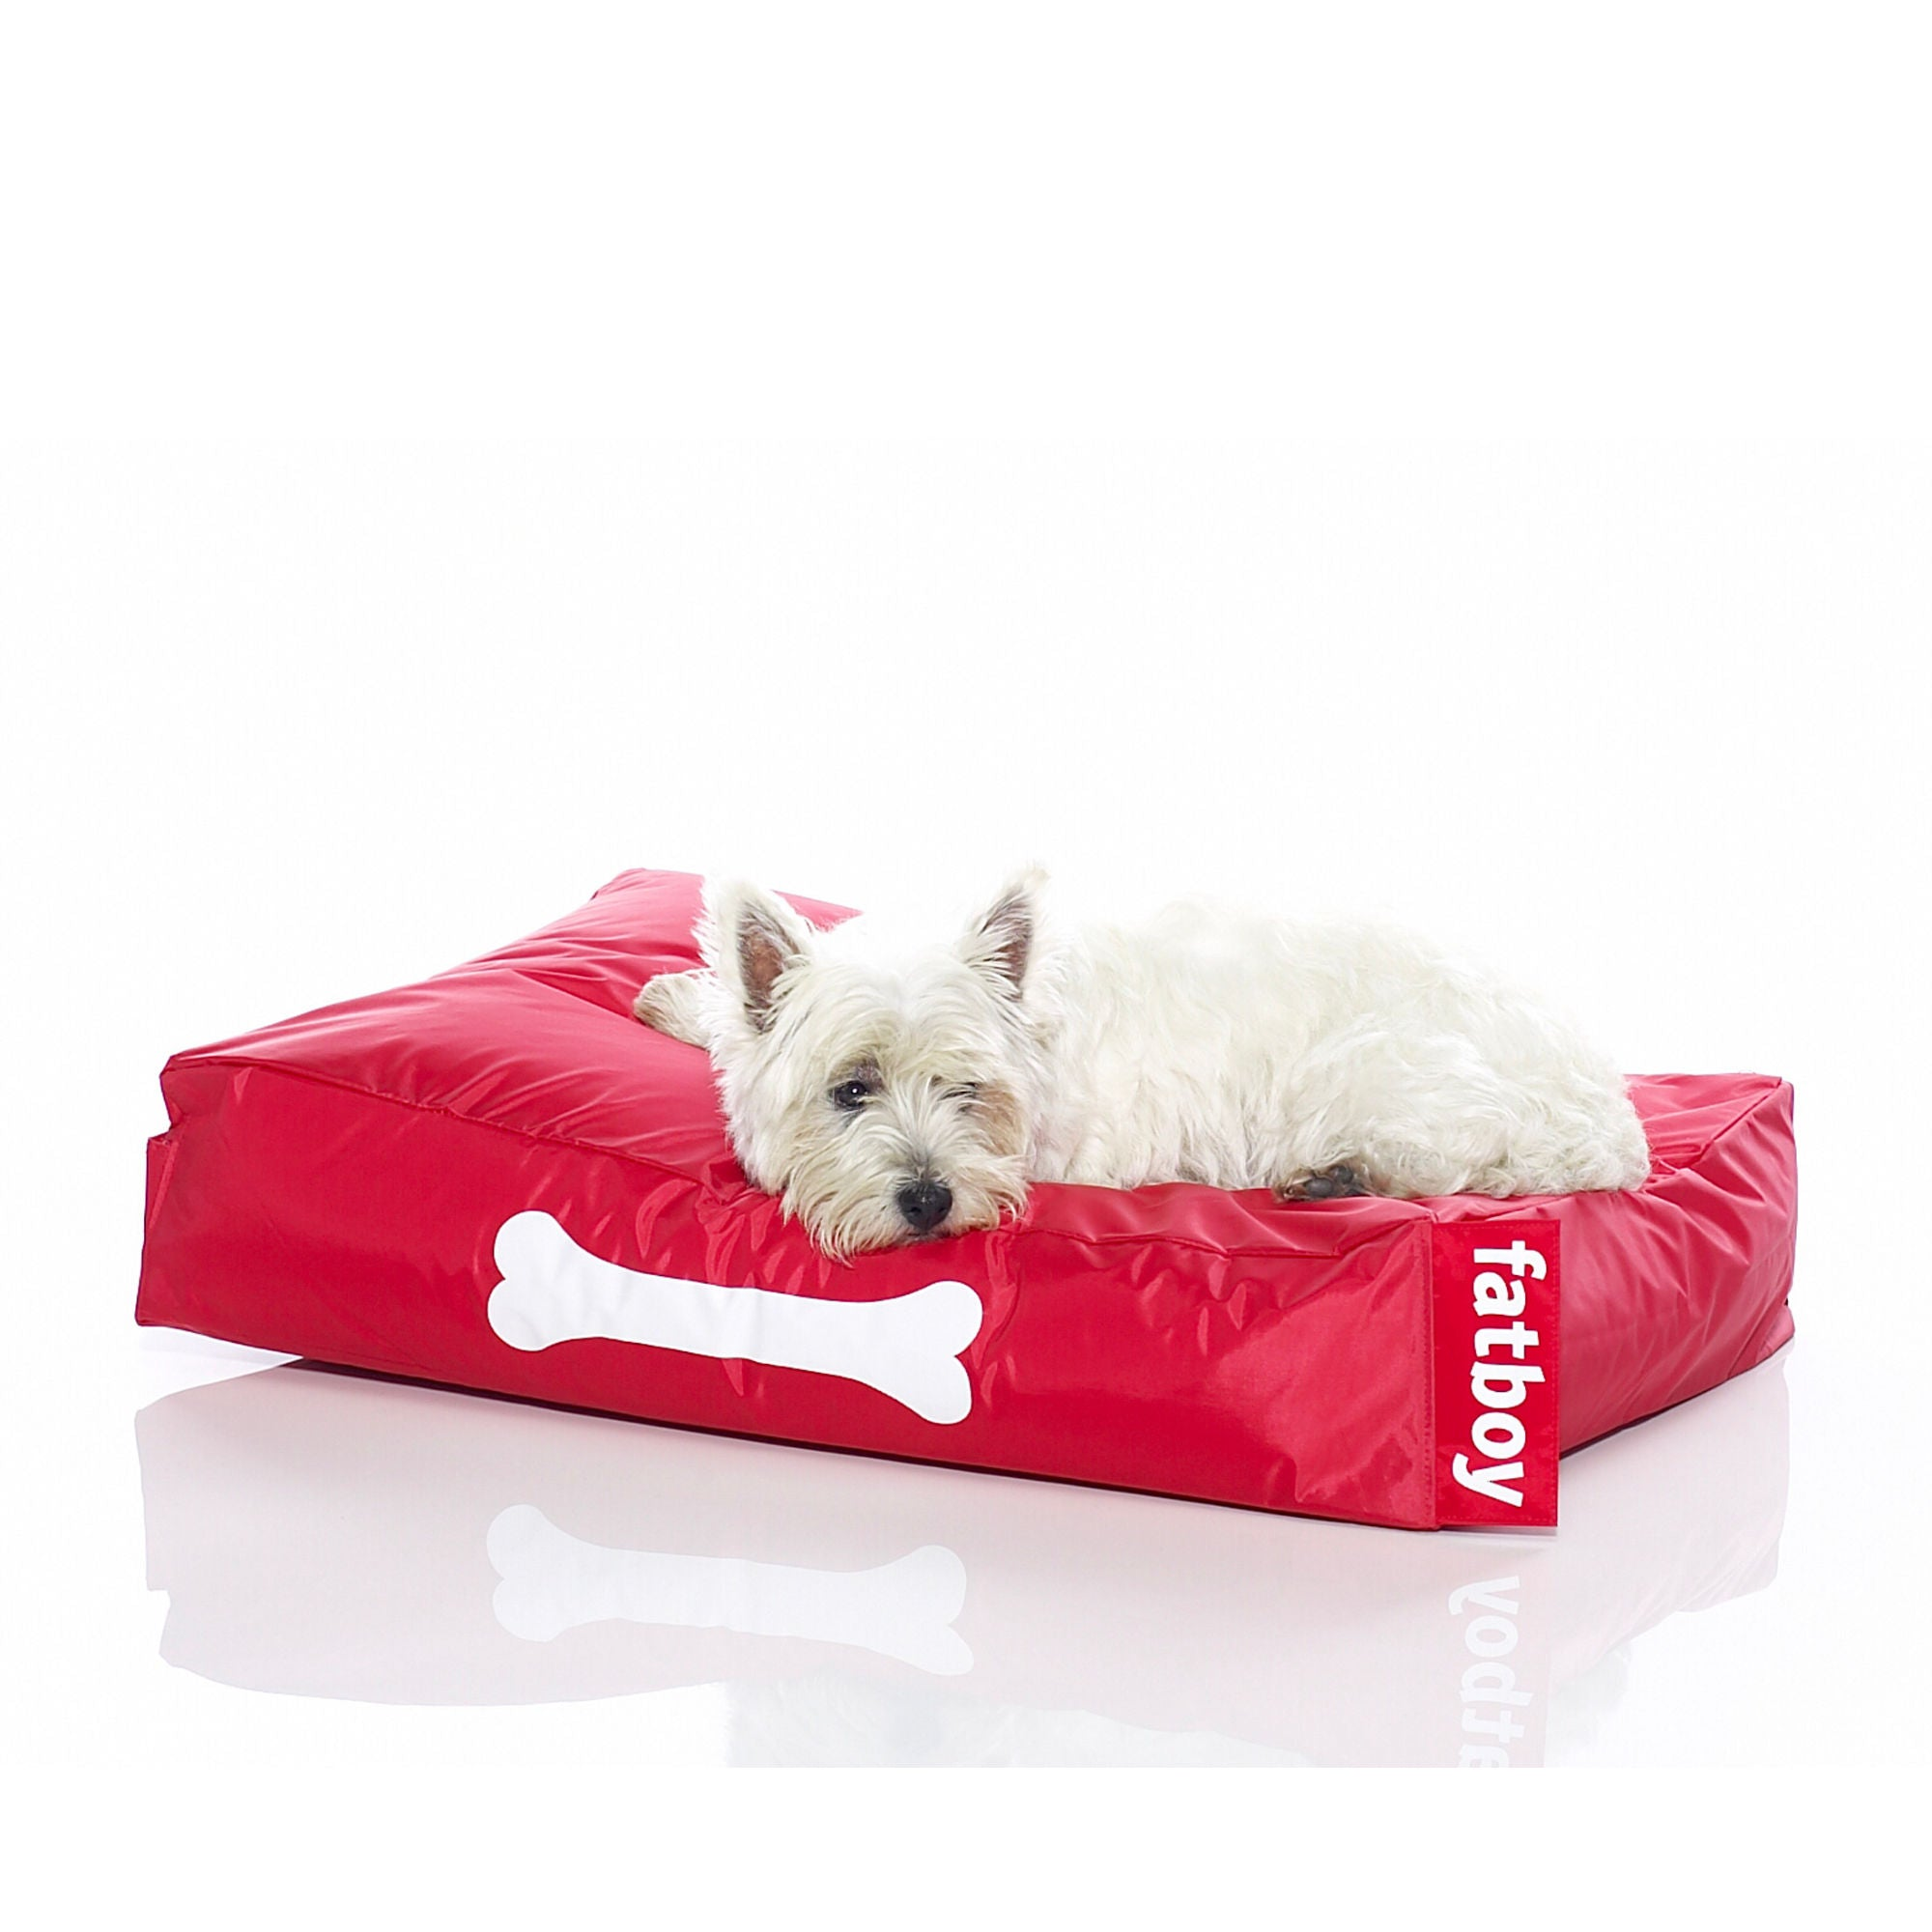 Doggielounge Dog Bed Small , Red